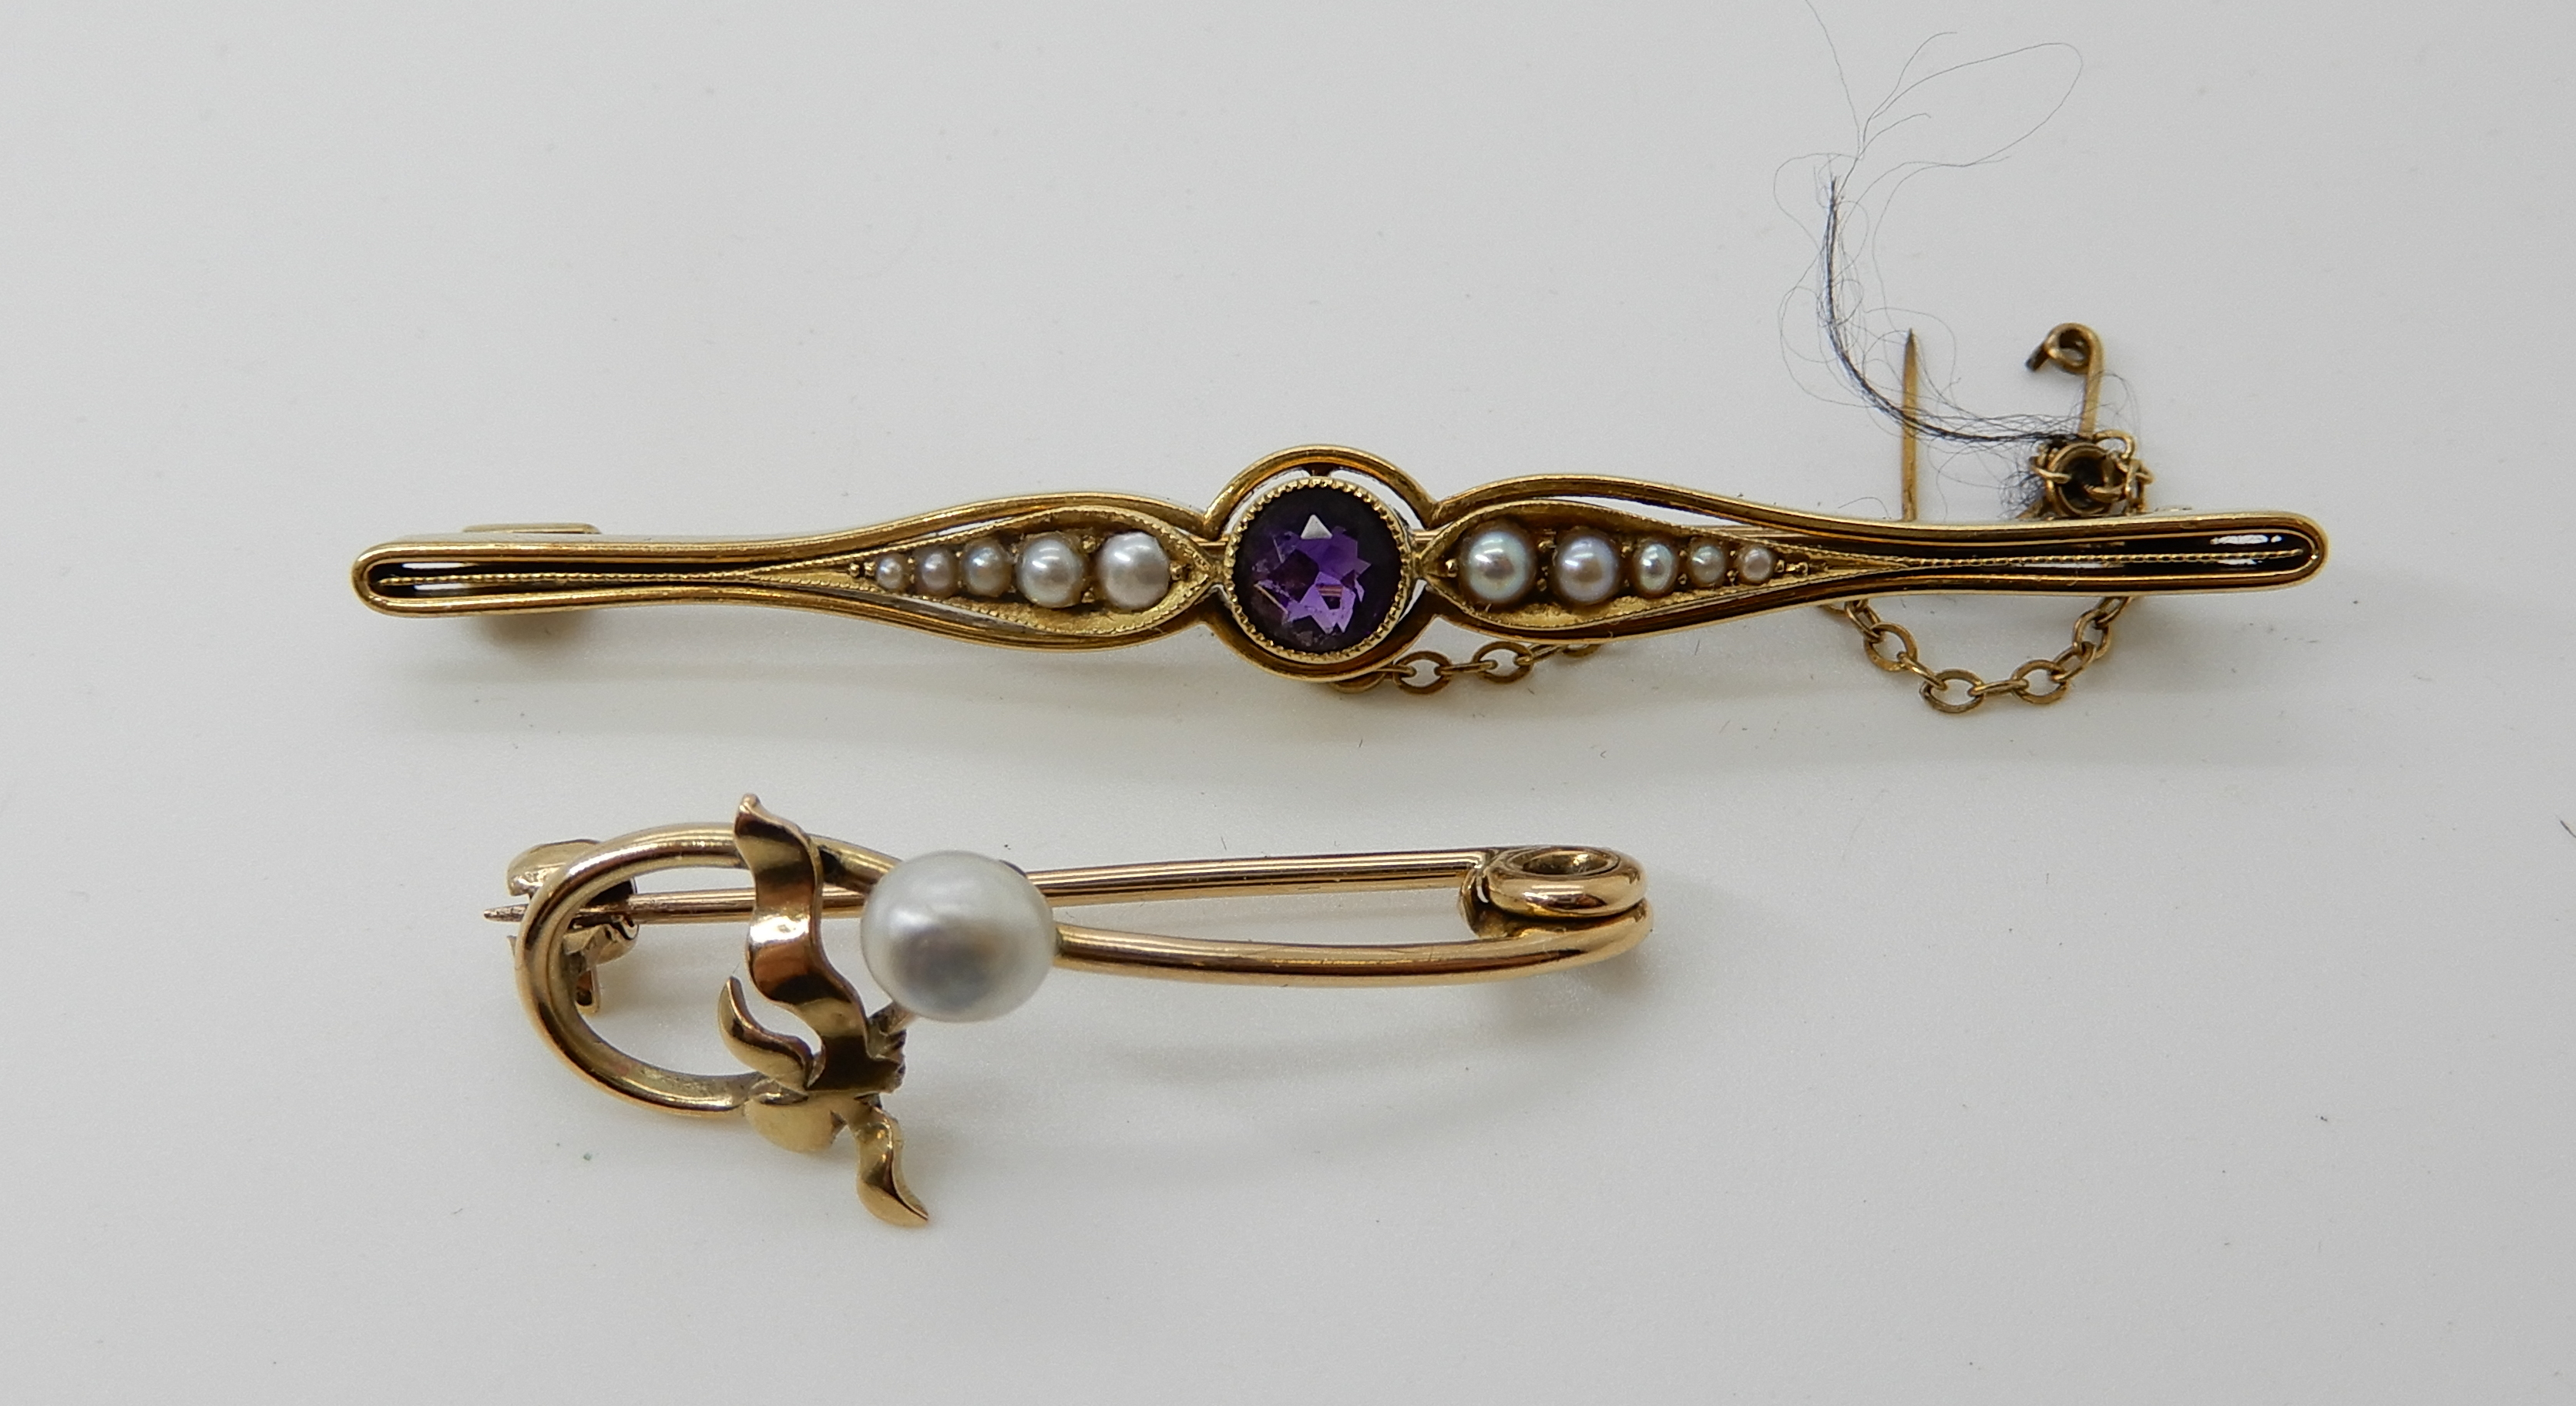 Lot 55 - A 15ct gold amethyst and pearl brooch length 6.3cm, weight 6gms, together with a yellow metal